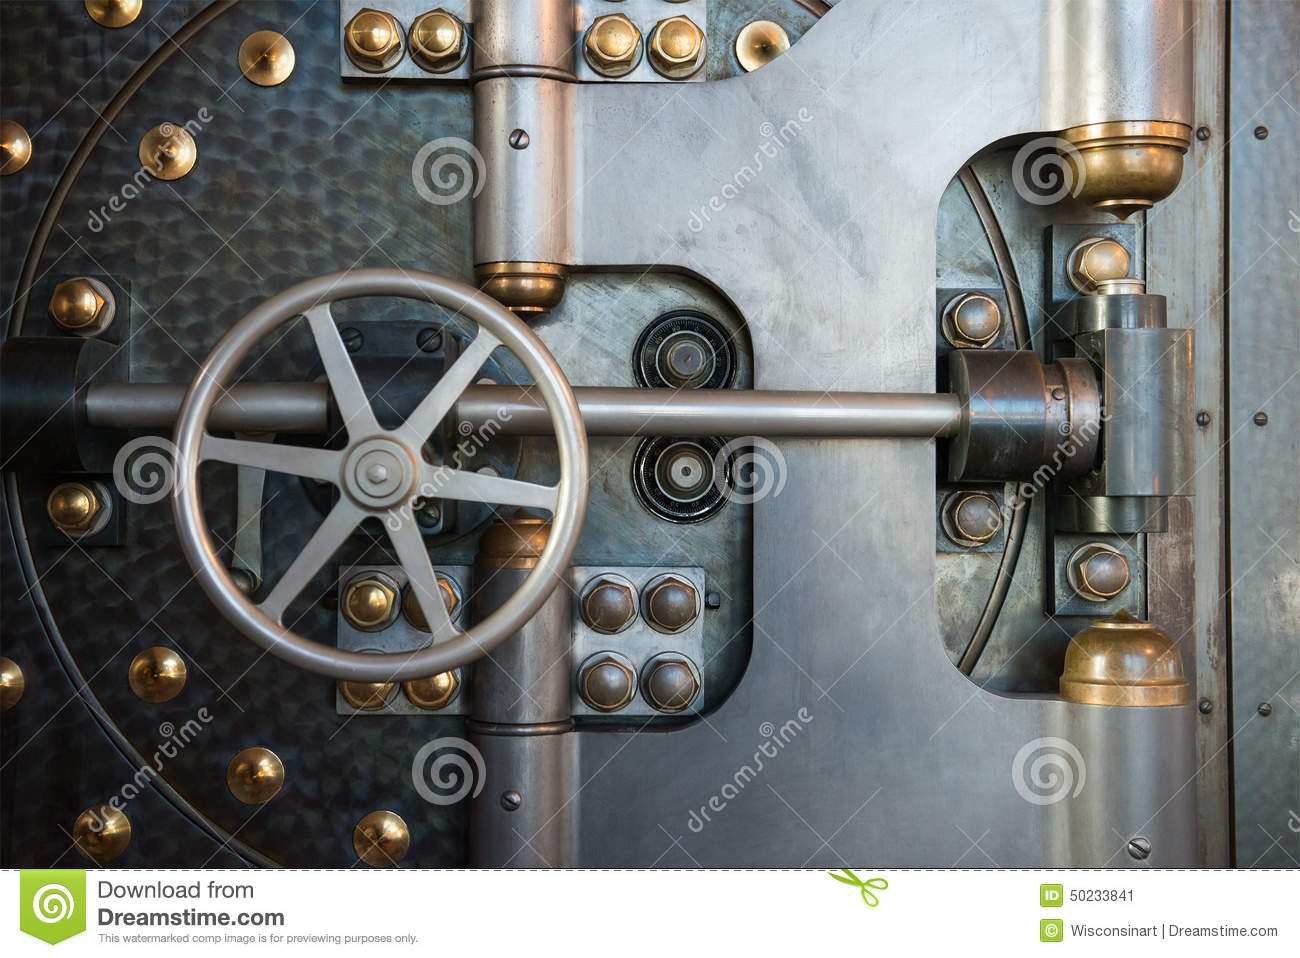 vintage bank vault safe industrial background stock image. Black Bedroom Furniture Sets. Home Design Ideas